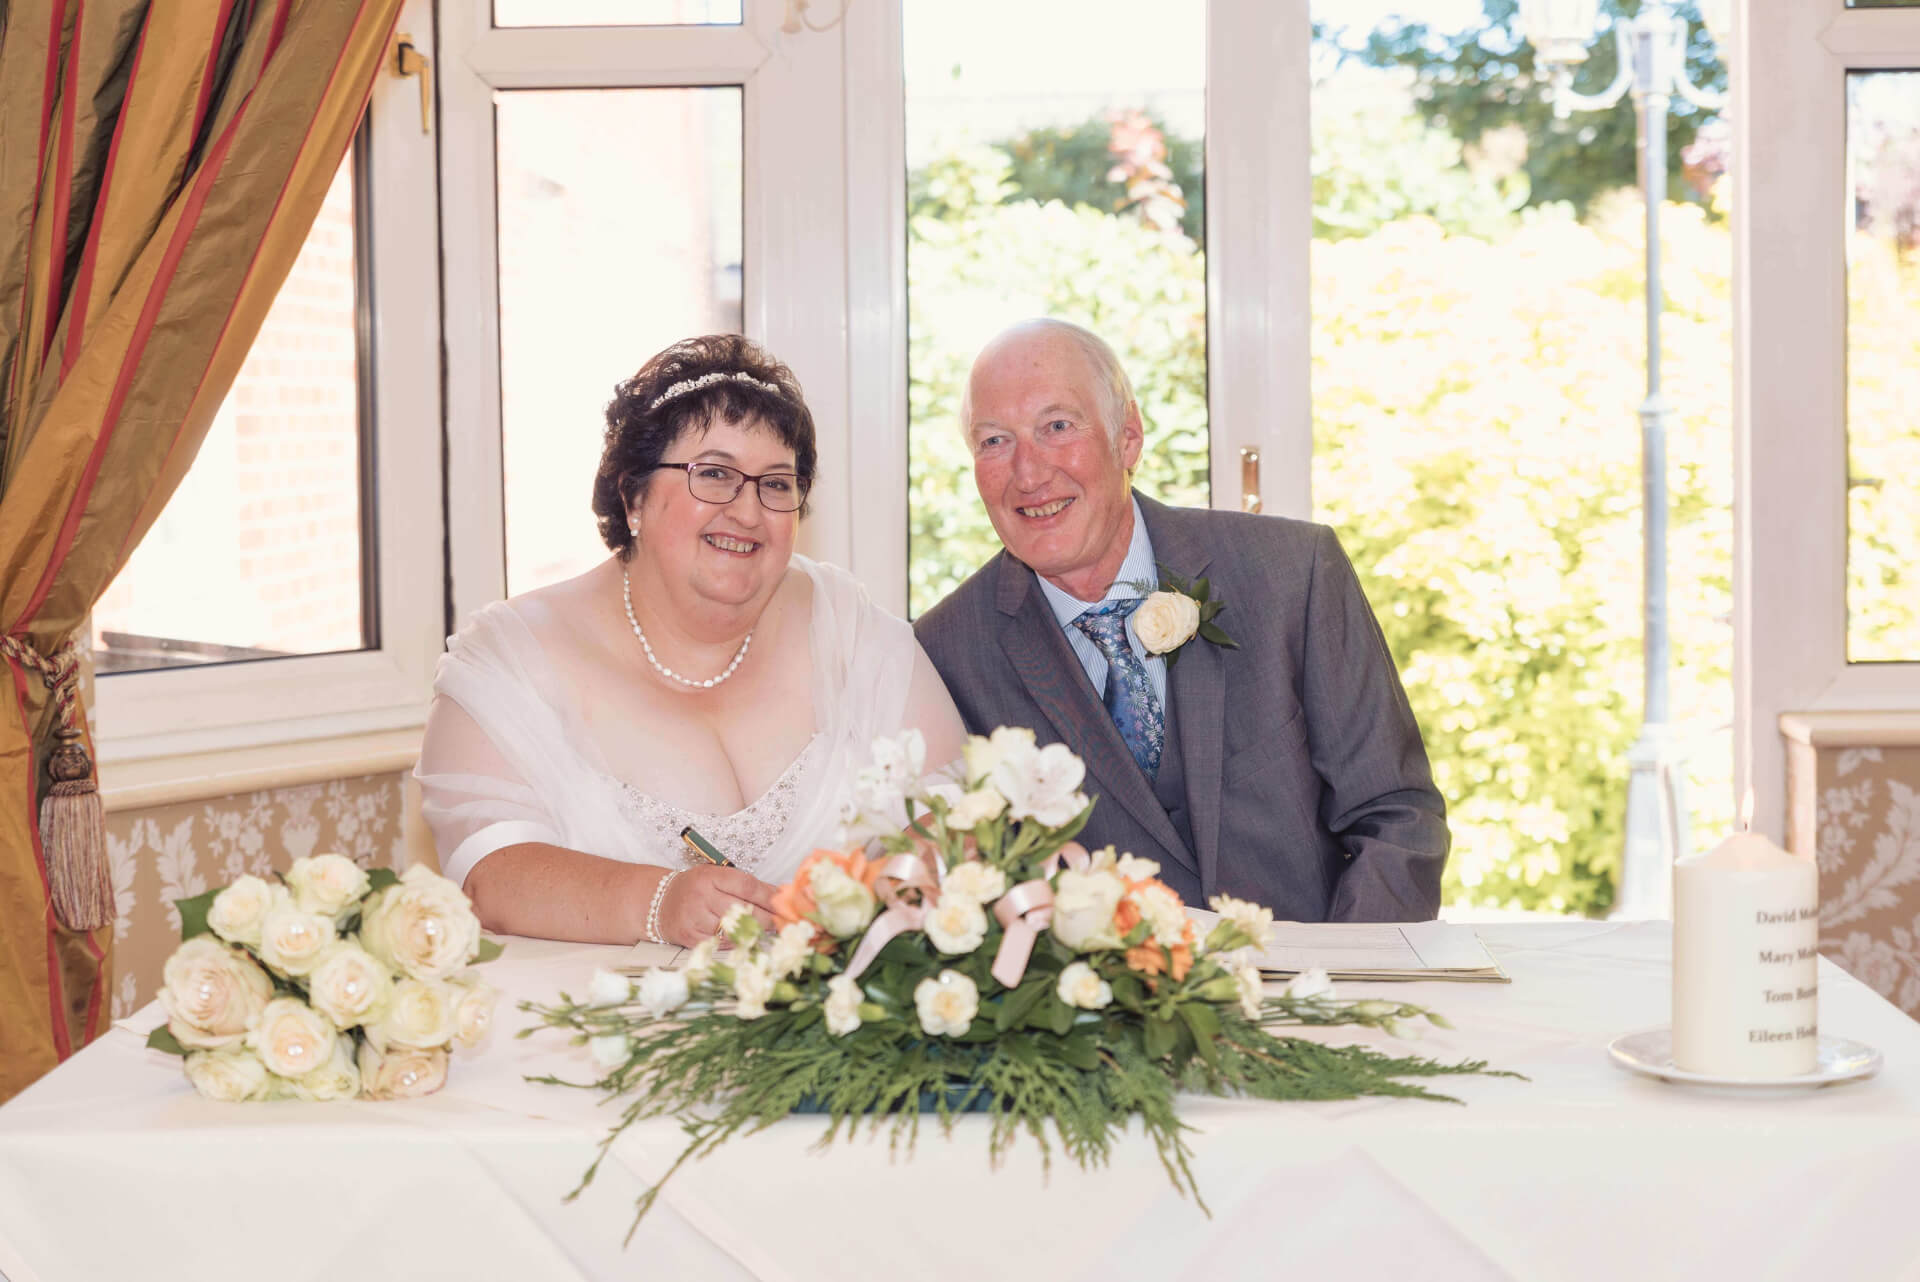 Signing of the register at Woodlands Hotel, Spalding wedding photography by Slice of Life Photography